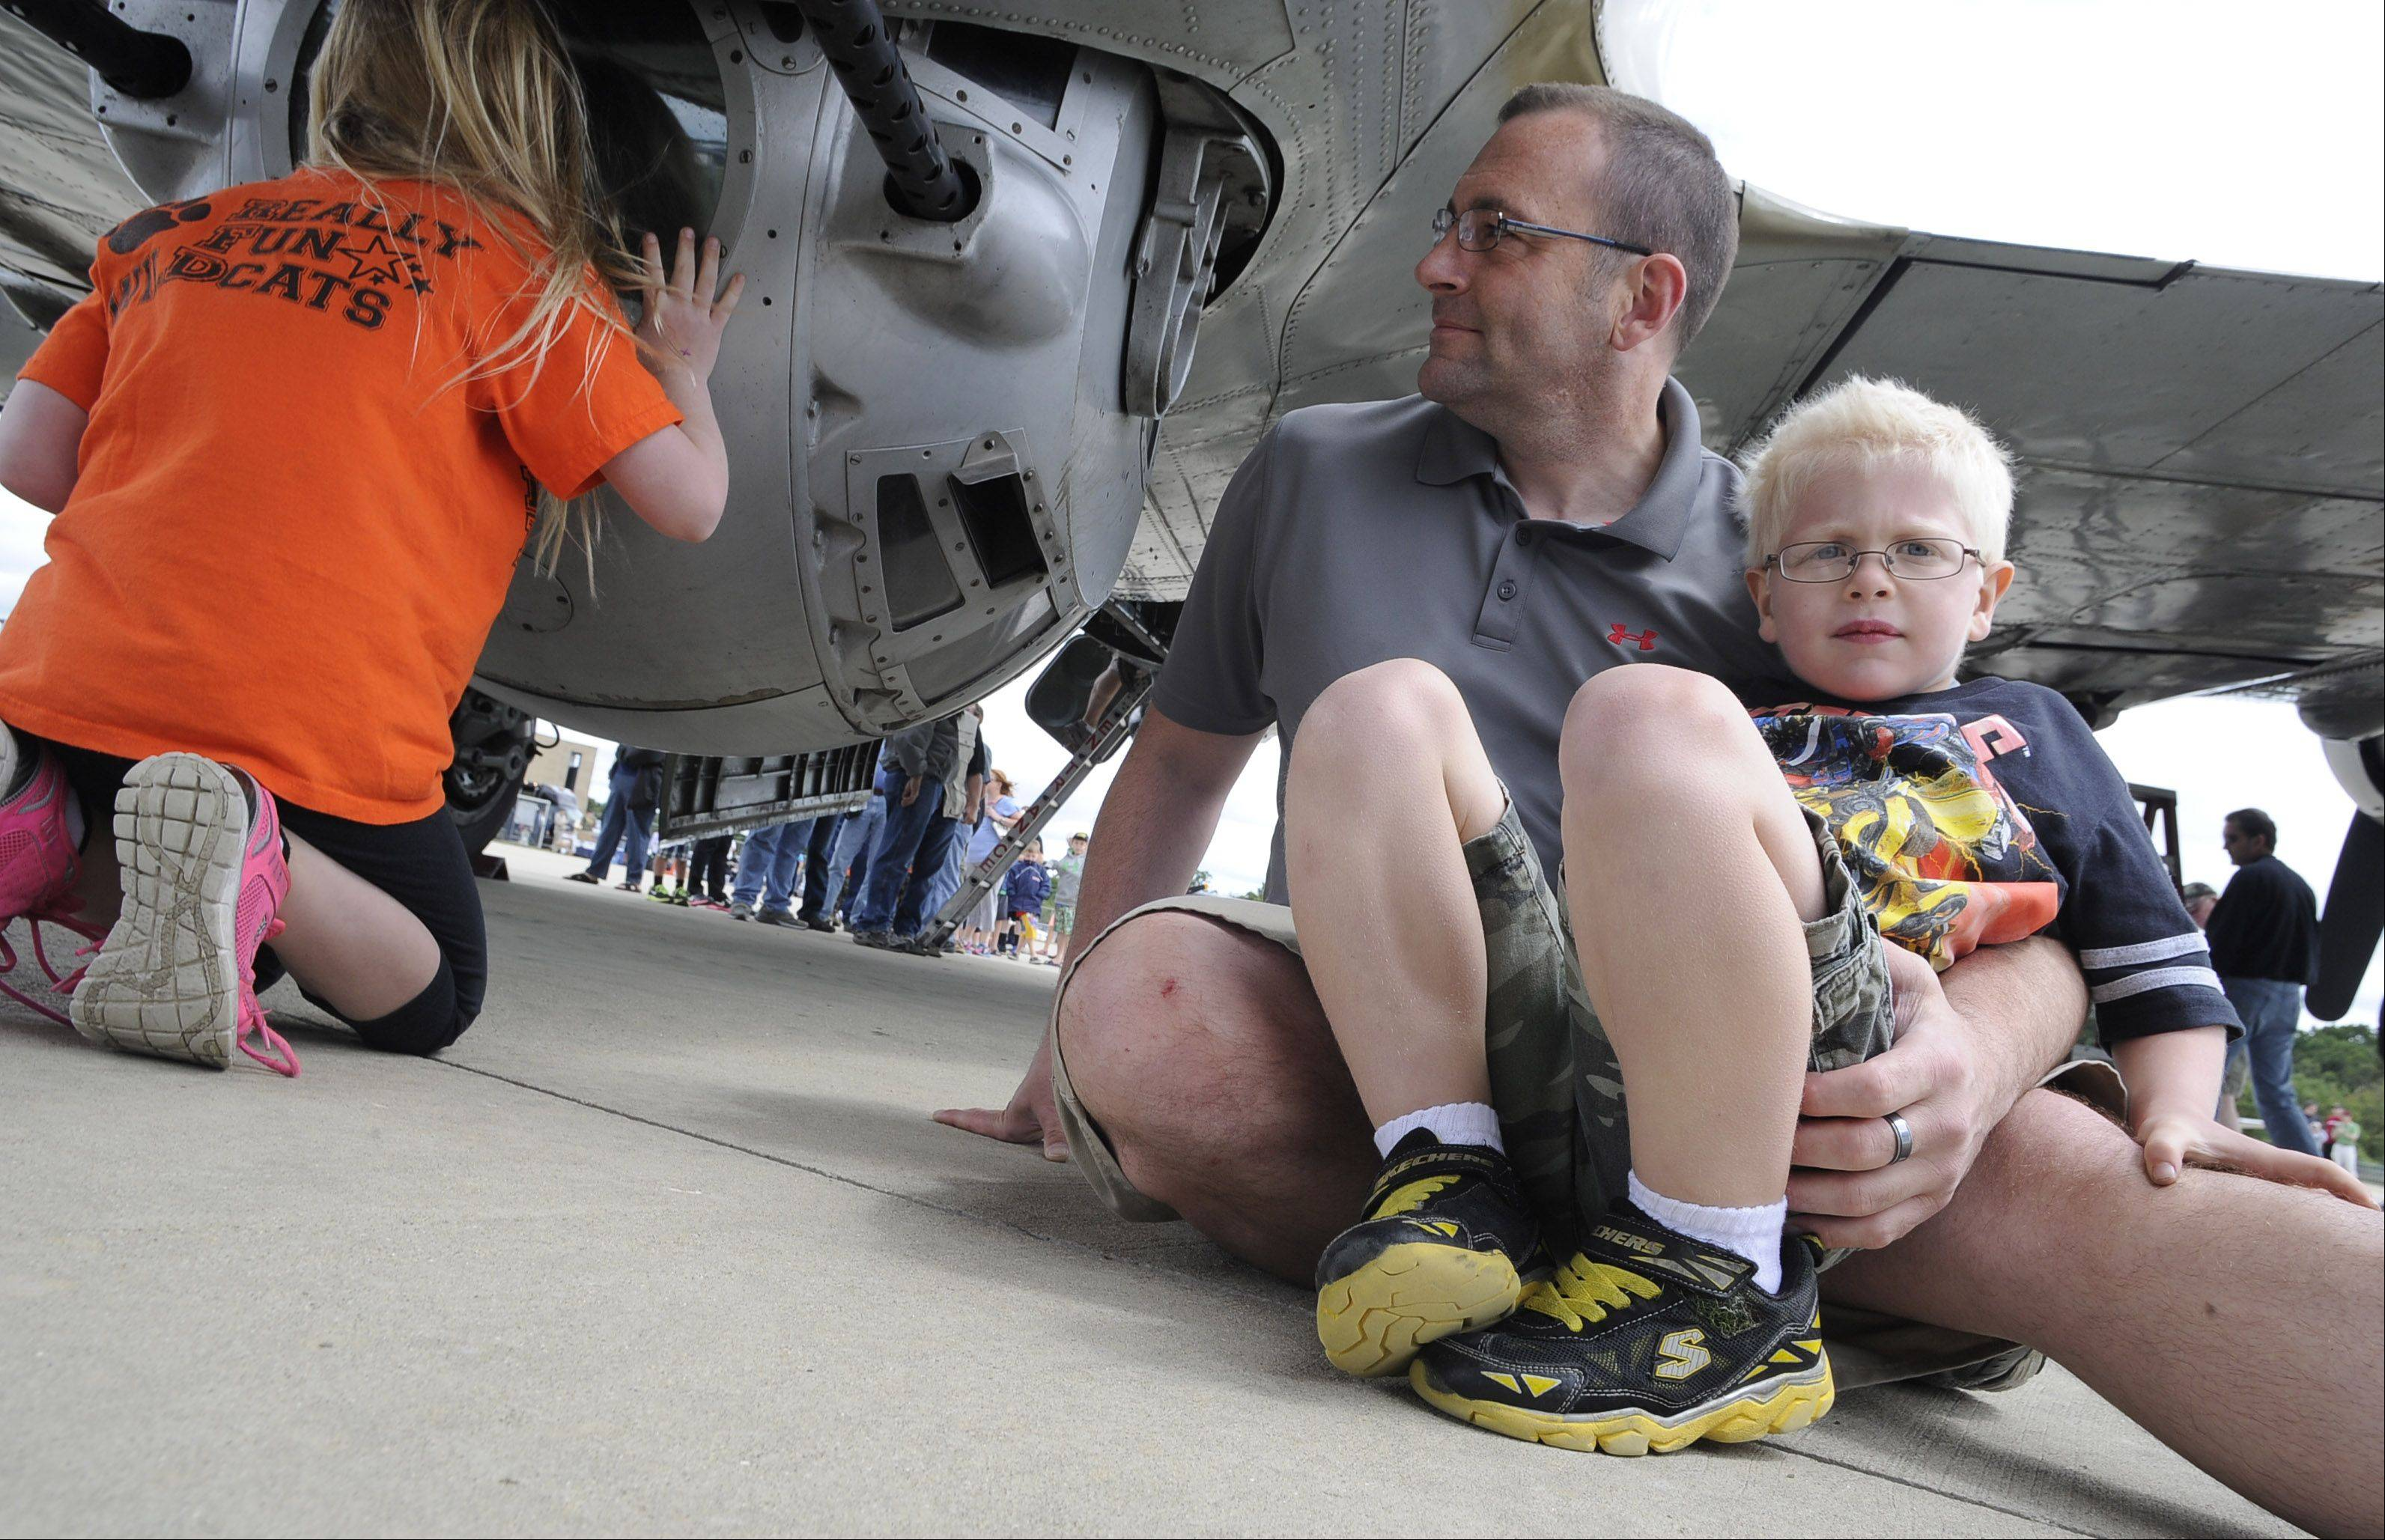 Mina Walldorf, 7 , of Libertyville, along with her dad Karl and brother Erich, 5 , check out the B-17 Flying Fortress which landed at Chicago Executive Airport on Saturday as part of the 2013 Wings of Freedom Tour.